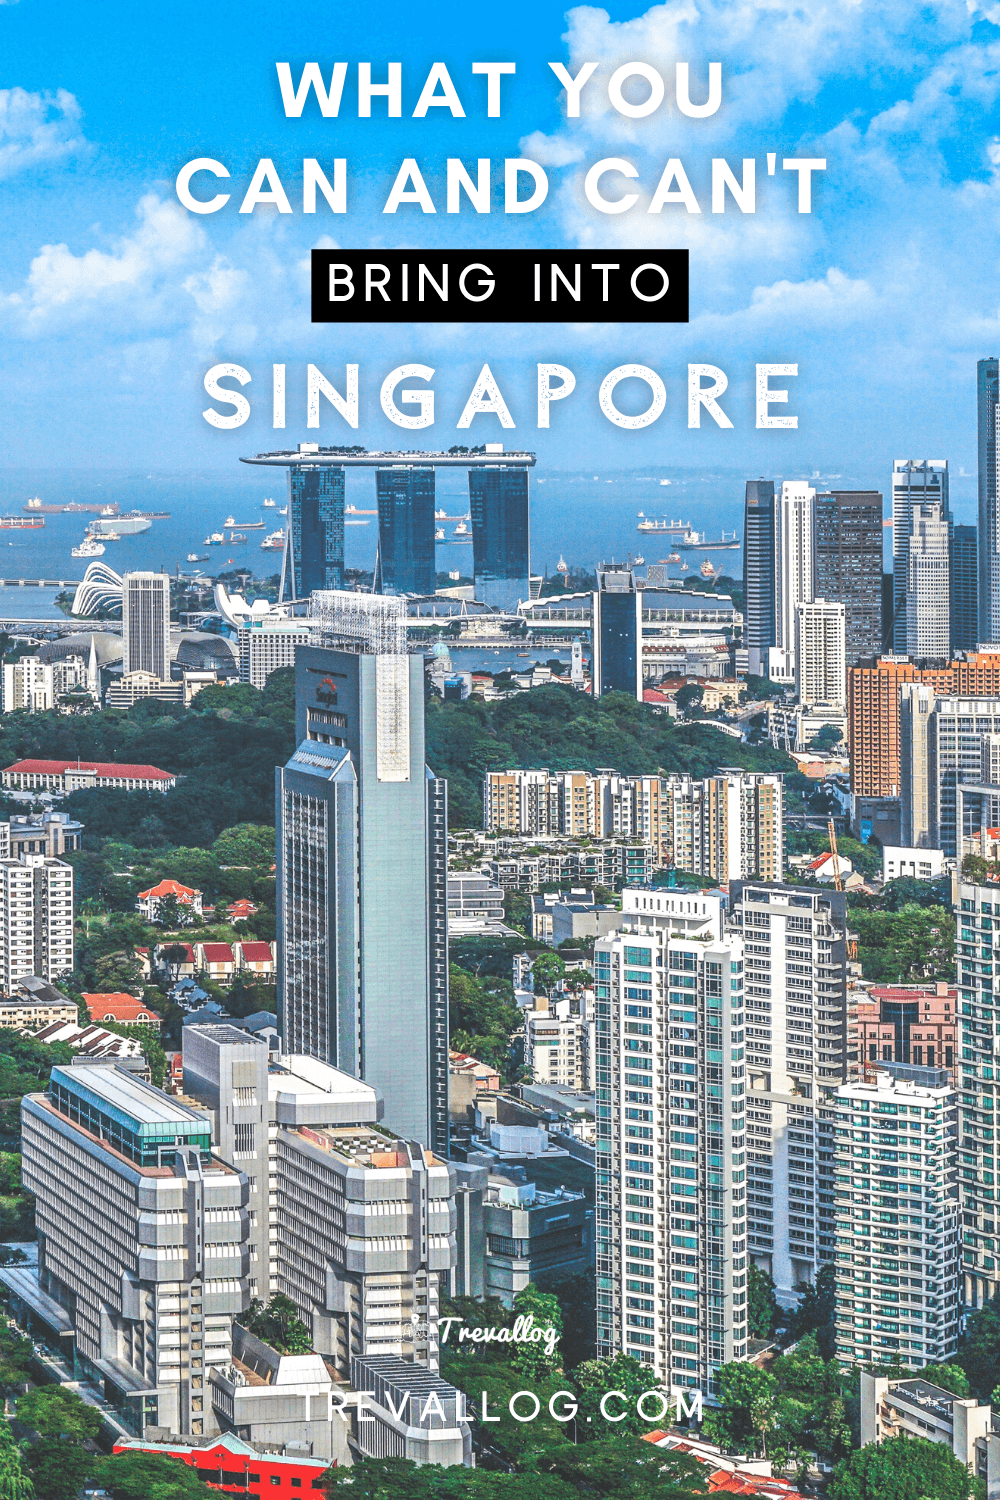 What You Can and Can't Bring into Singapore